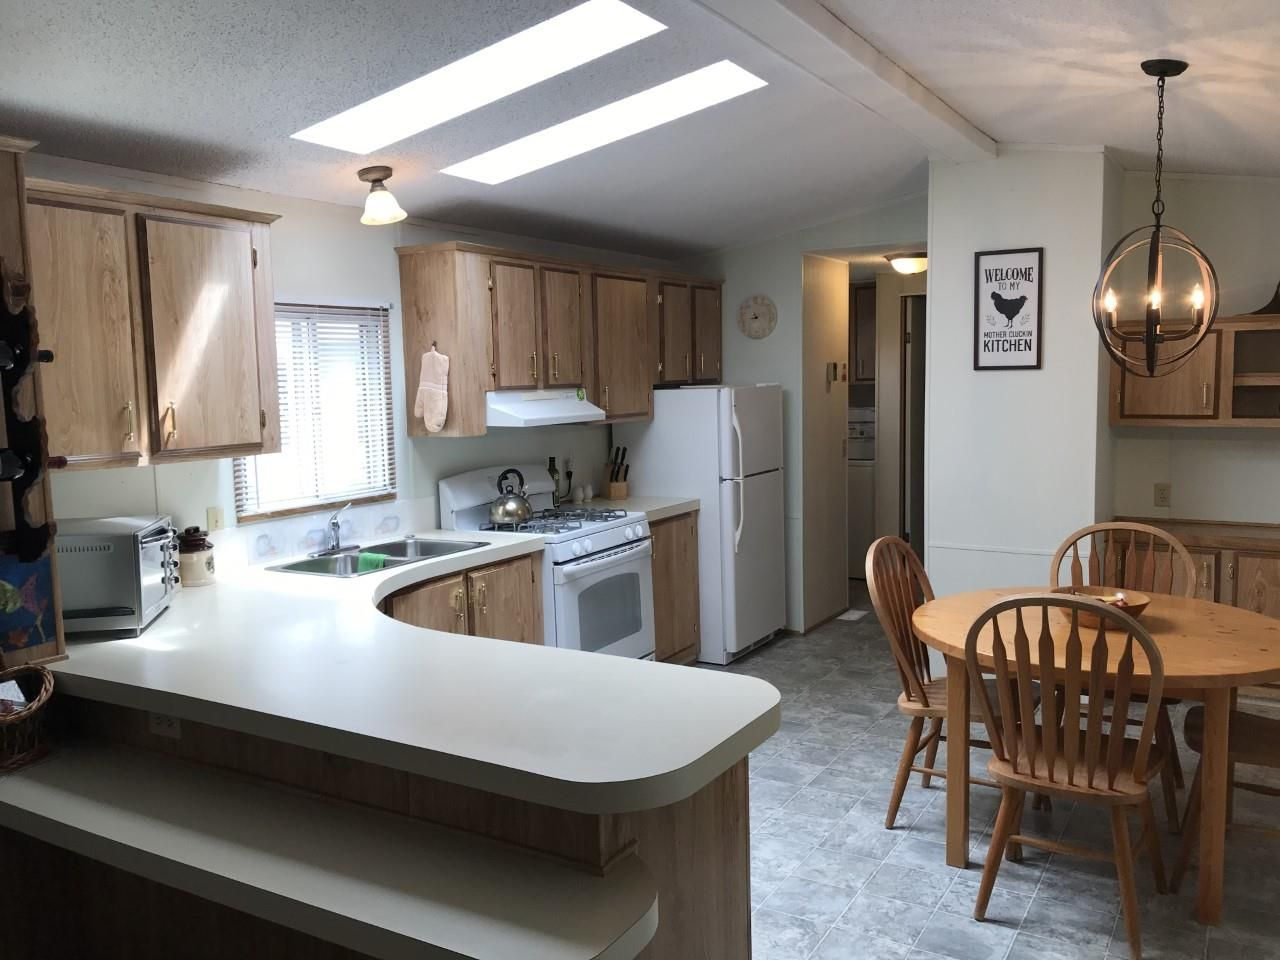 """Main Photo: 79 3300 HORN Street in Abbotsford: Central Abbotsford Manufactured Home for sale in """"Georgian Park"""" : MLS®# R2473455"""